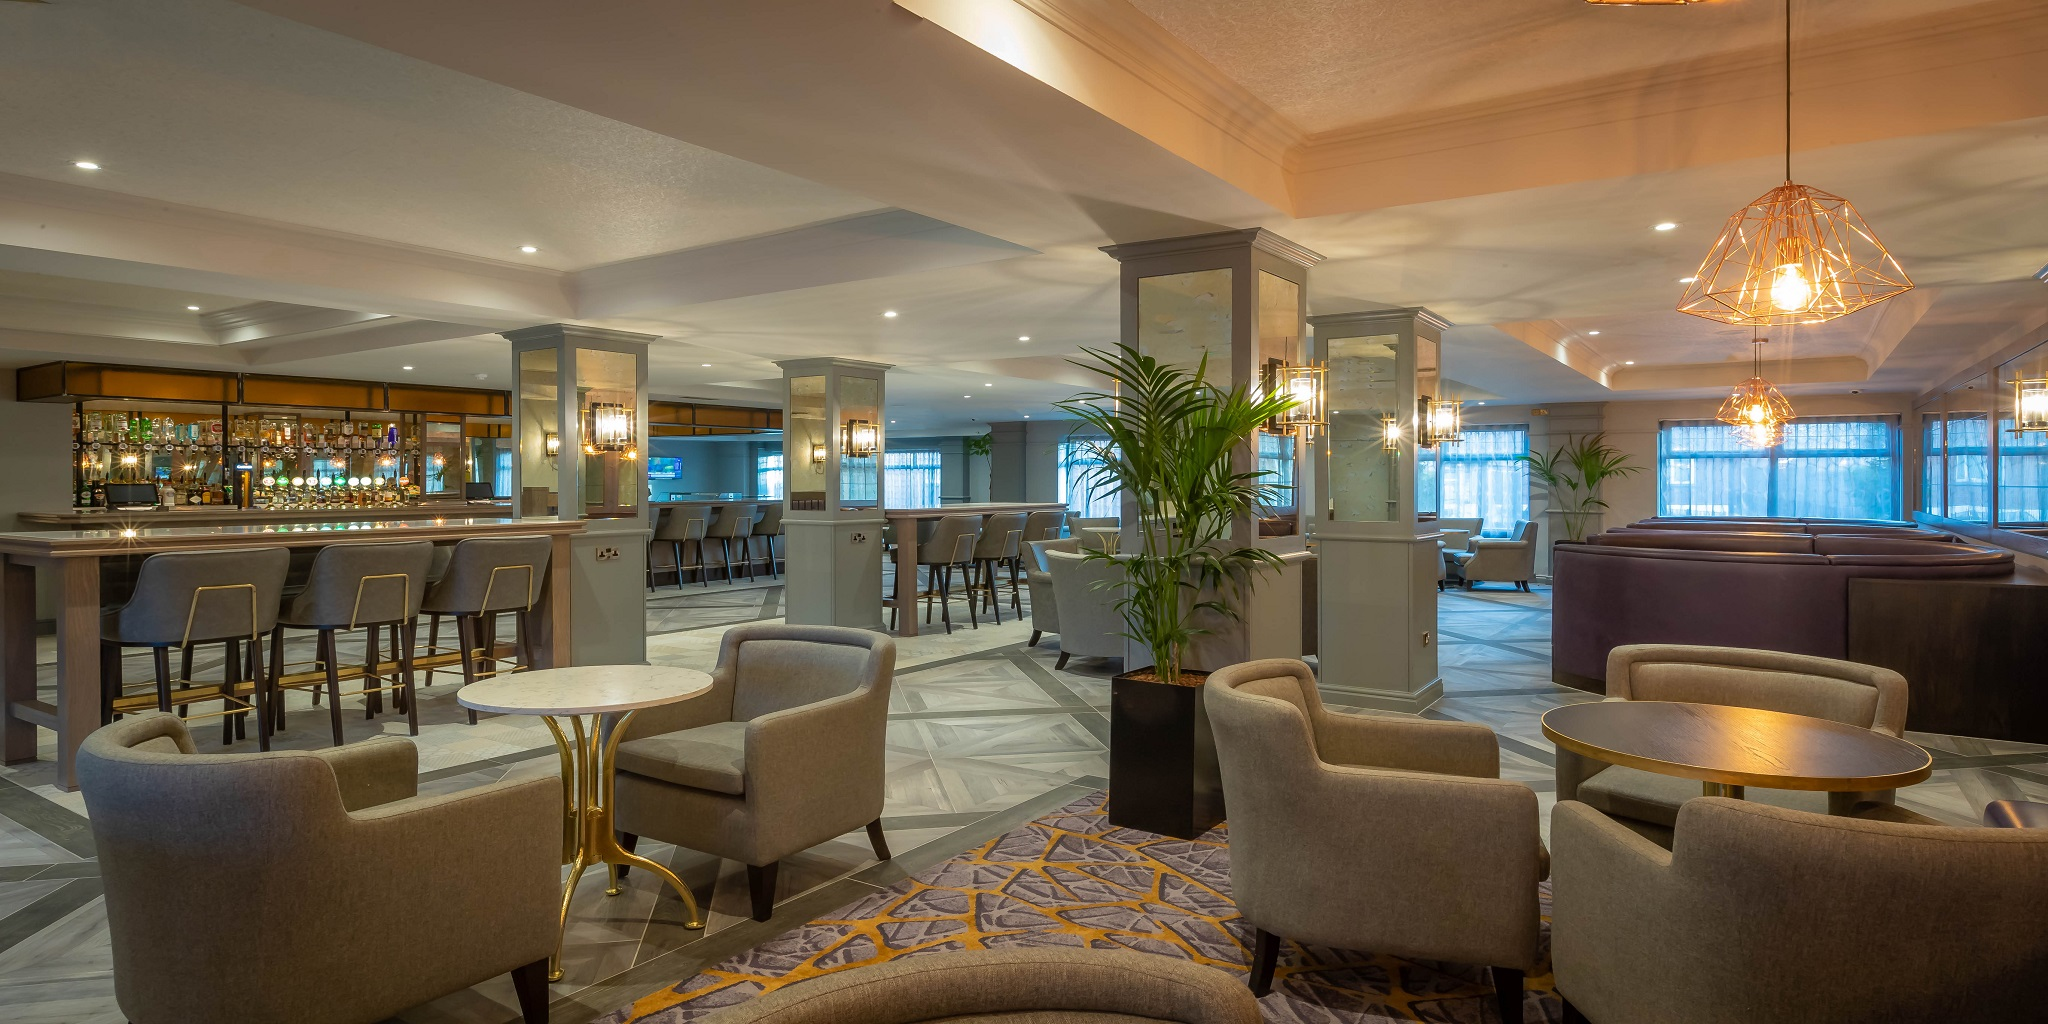 Hotels In Ireland With Interconnecting Rooms